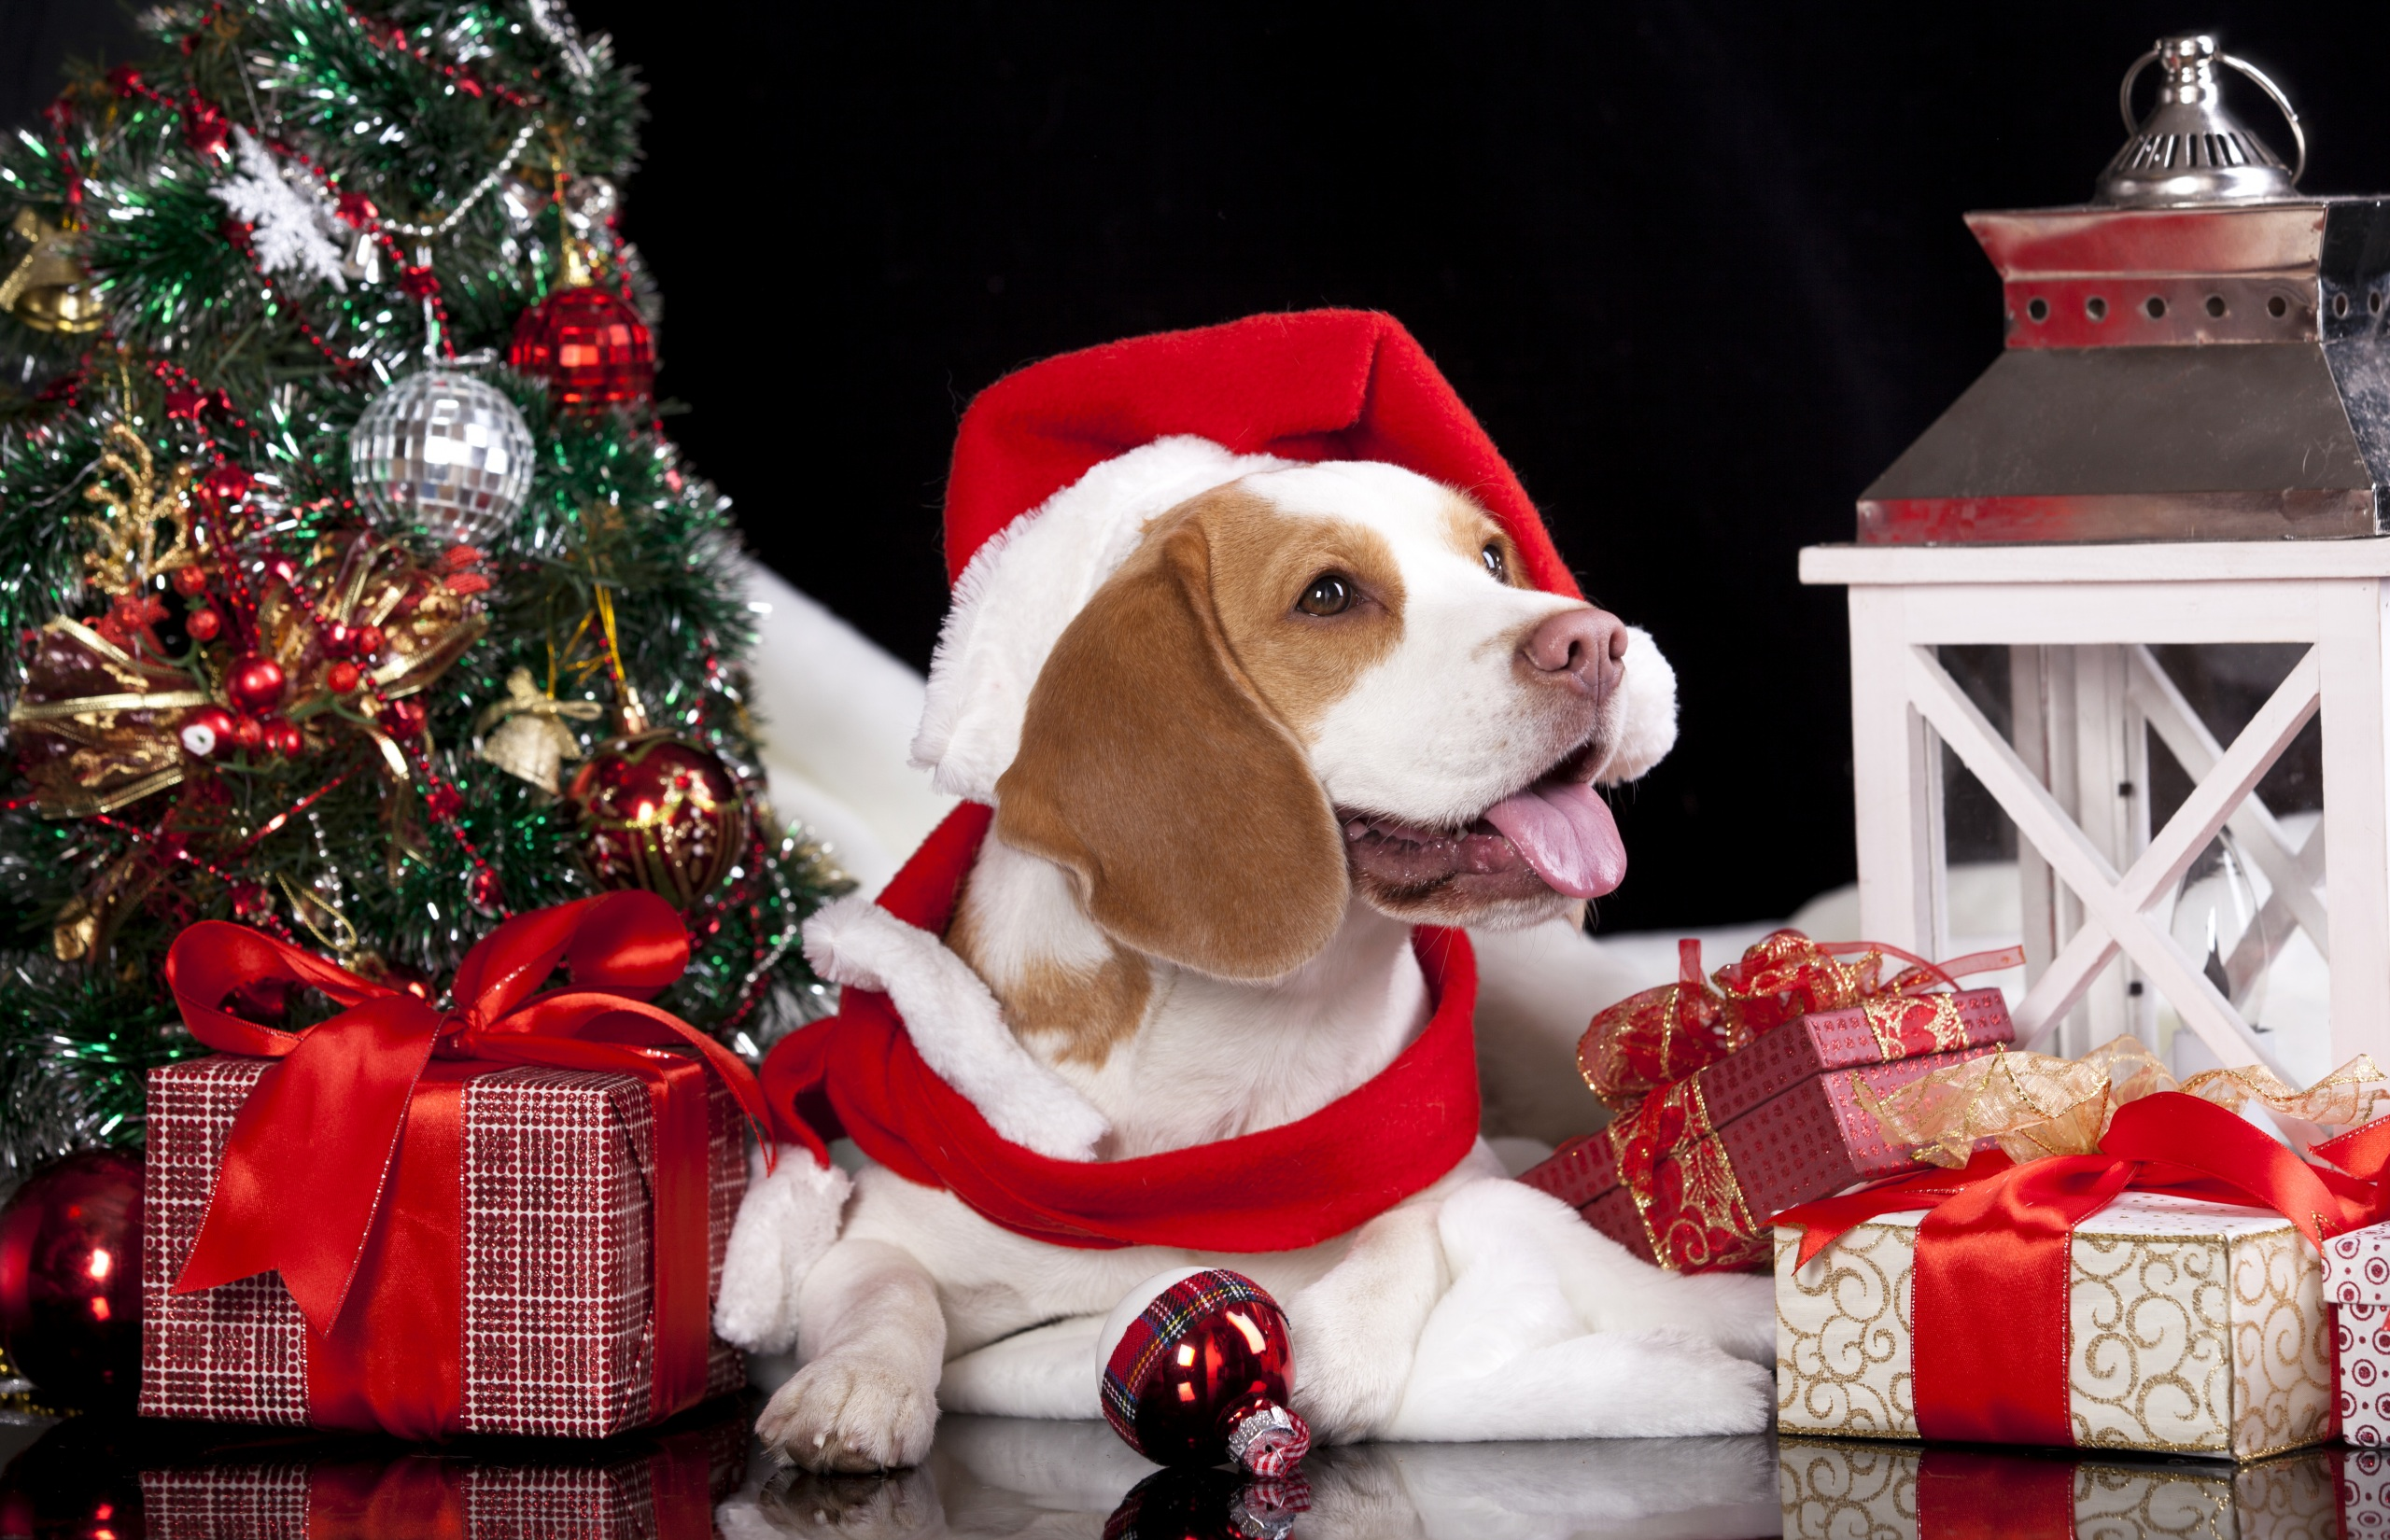 Dogs_Holidays_Christmas_458573